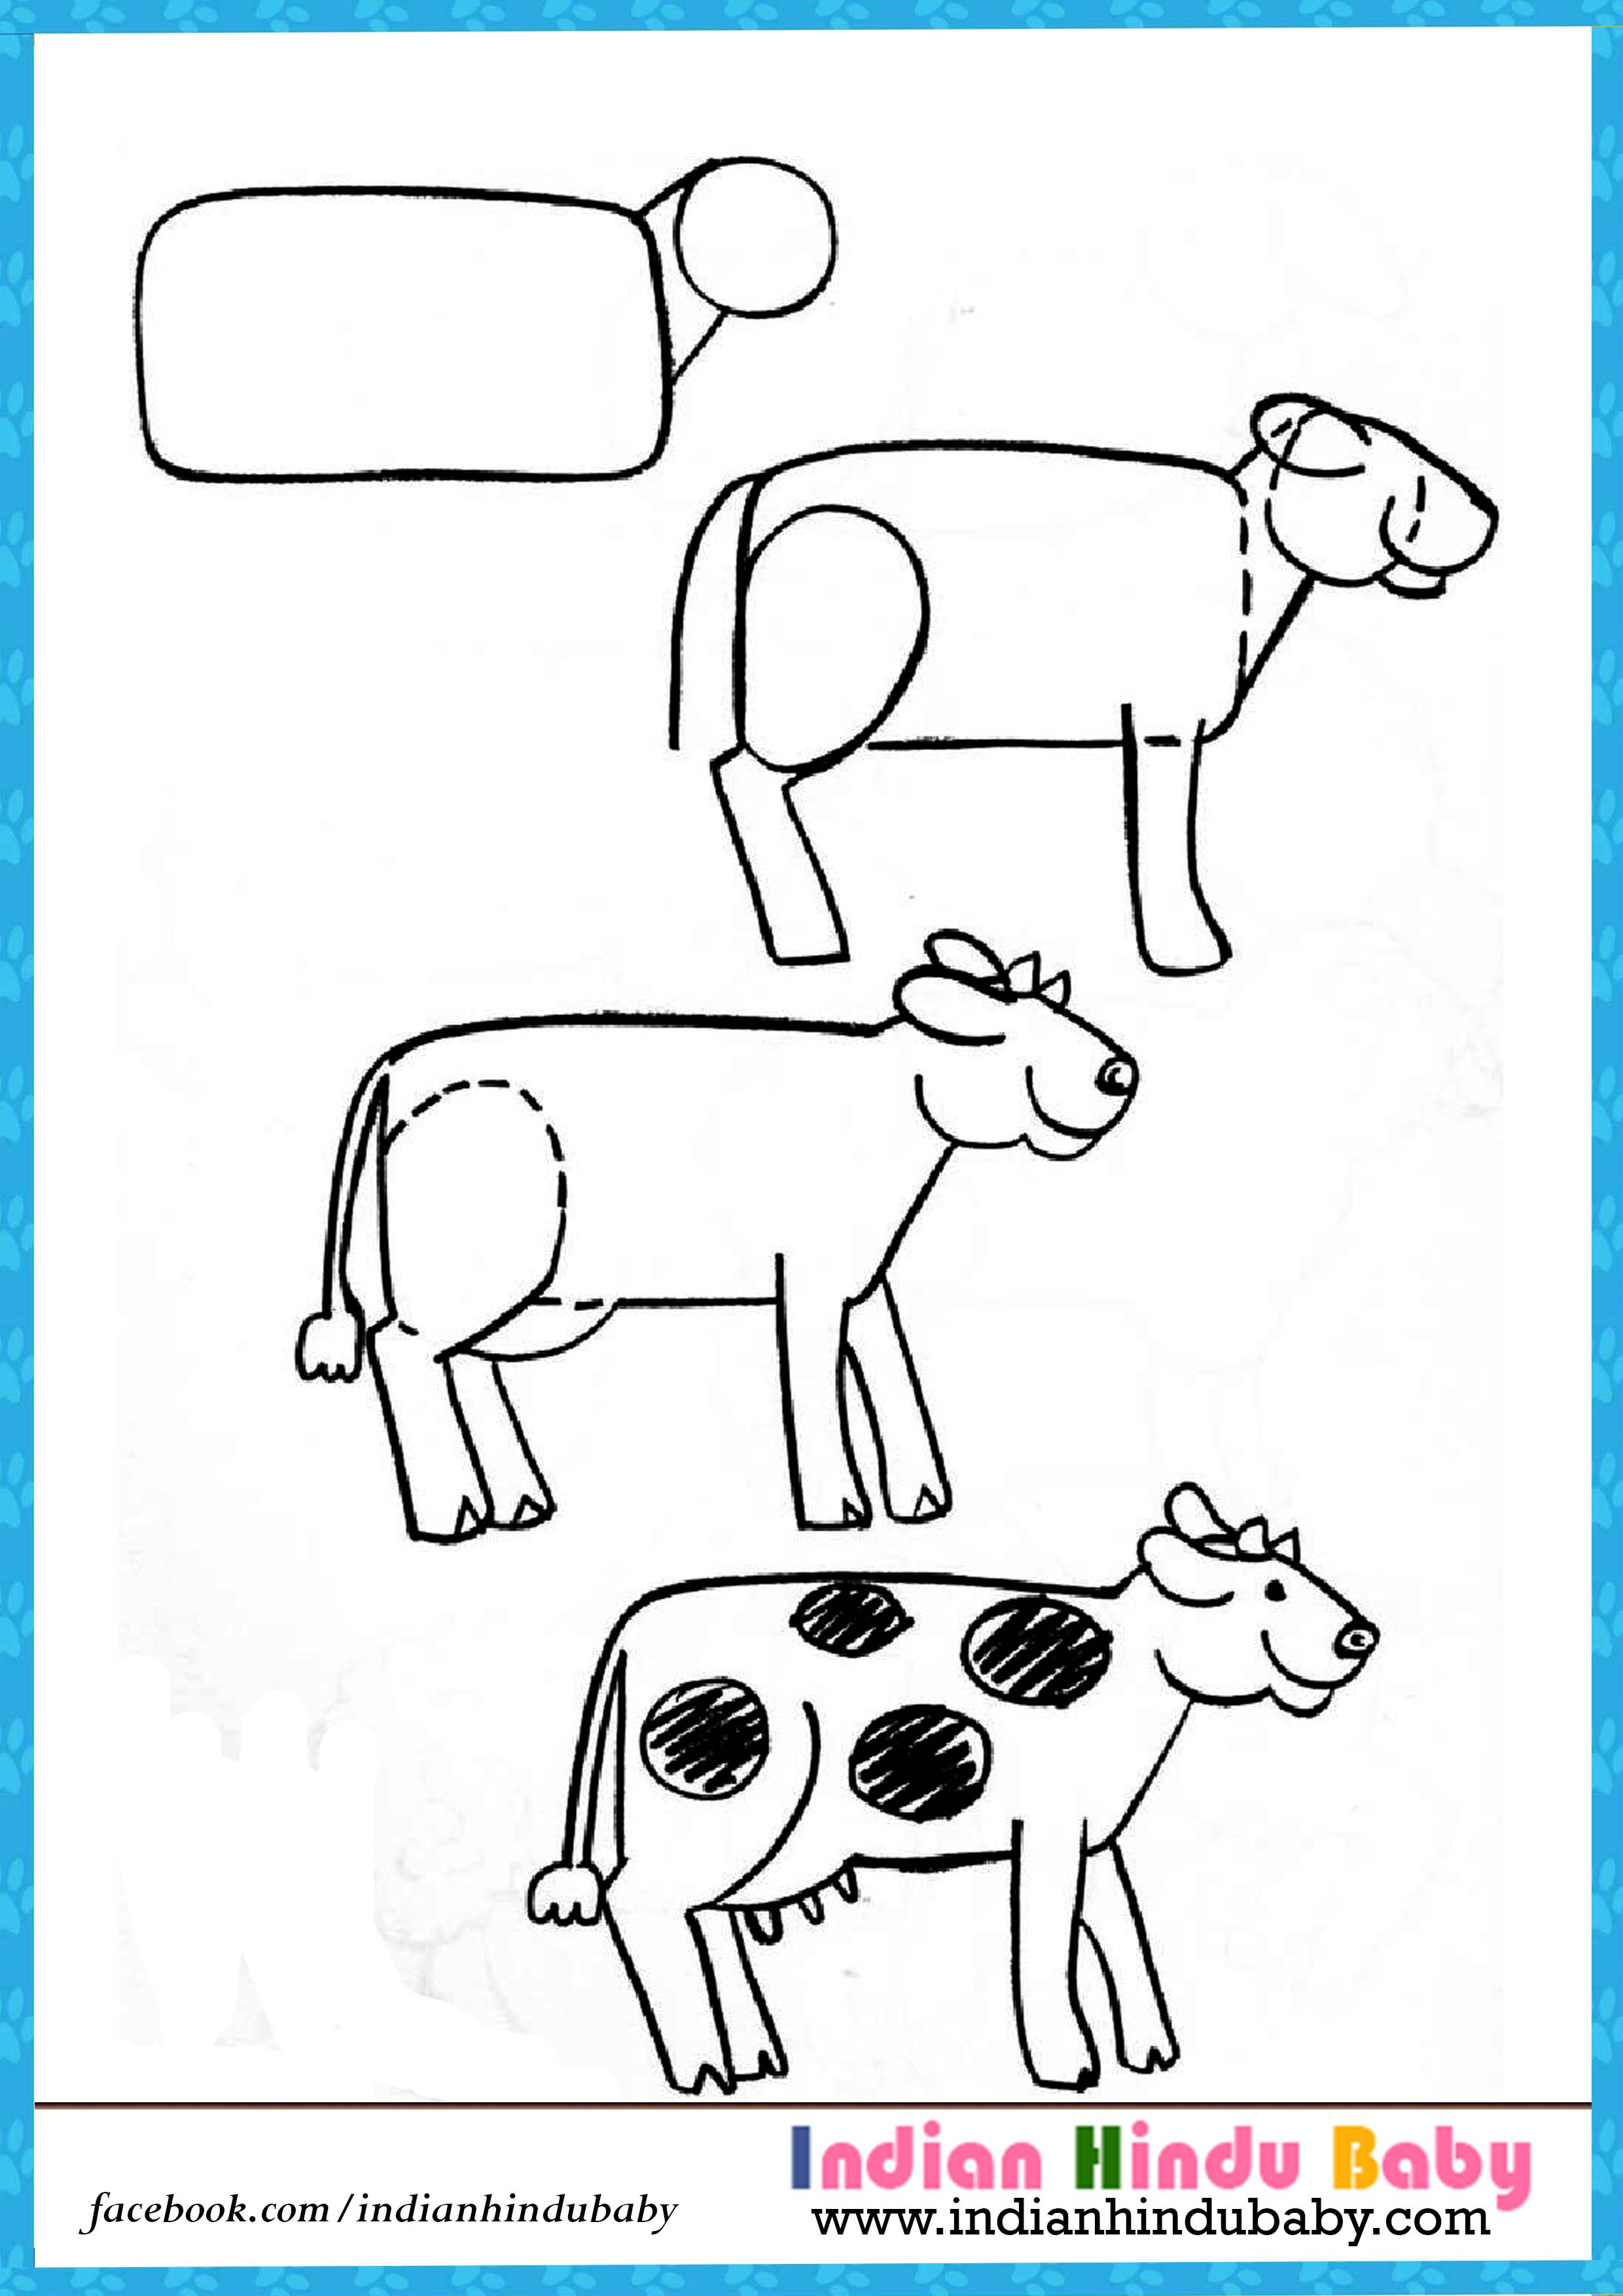 Cow Pictures Drawing At Getdrawings Com Free For Personal Use Cow